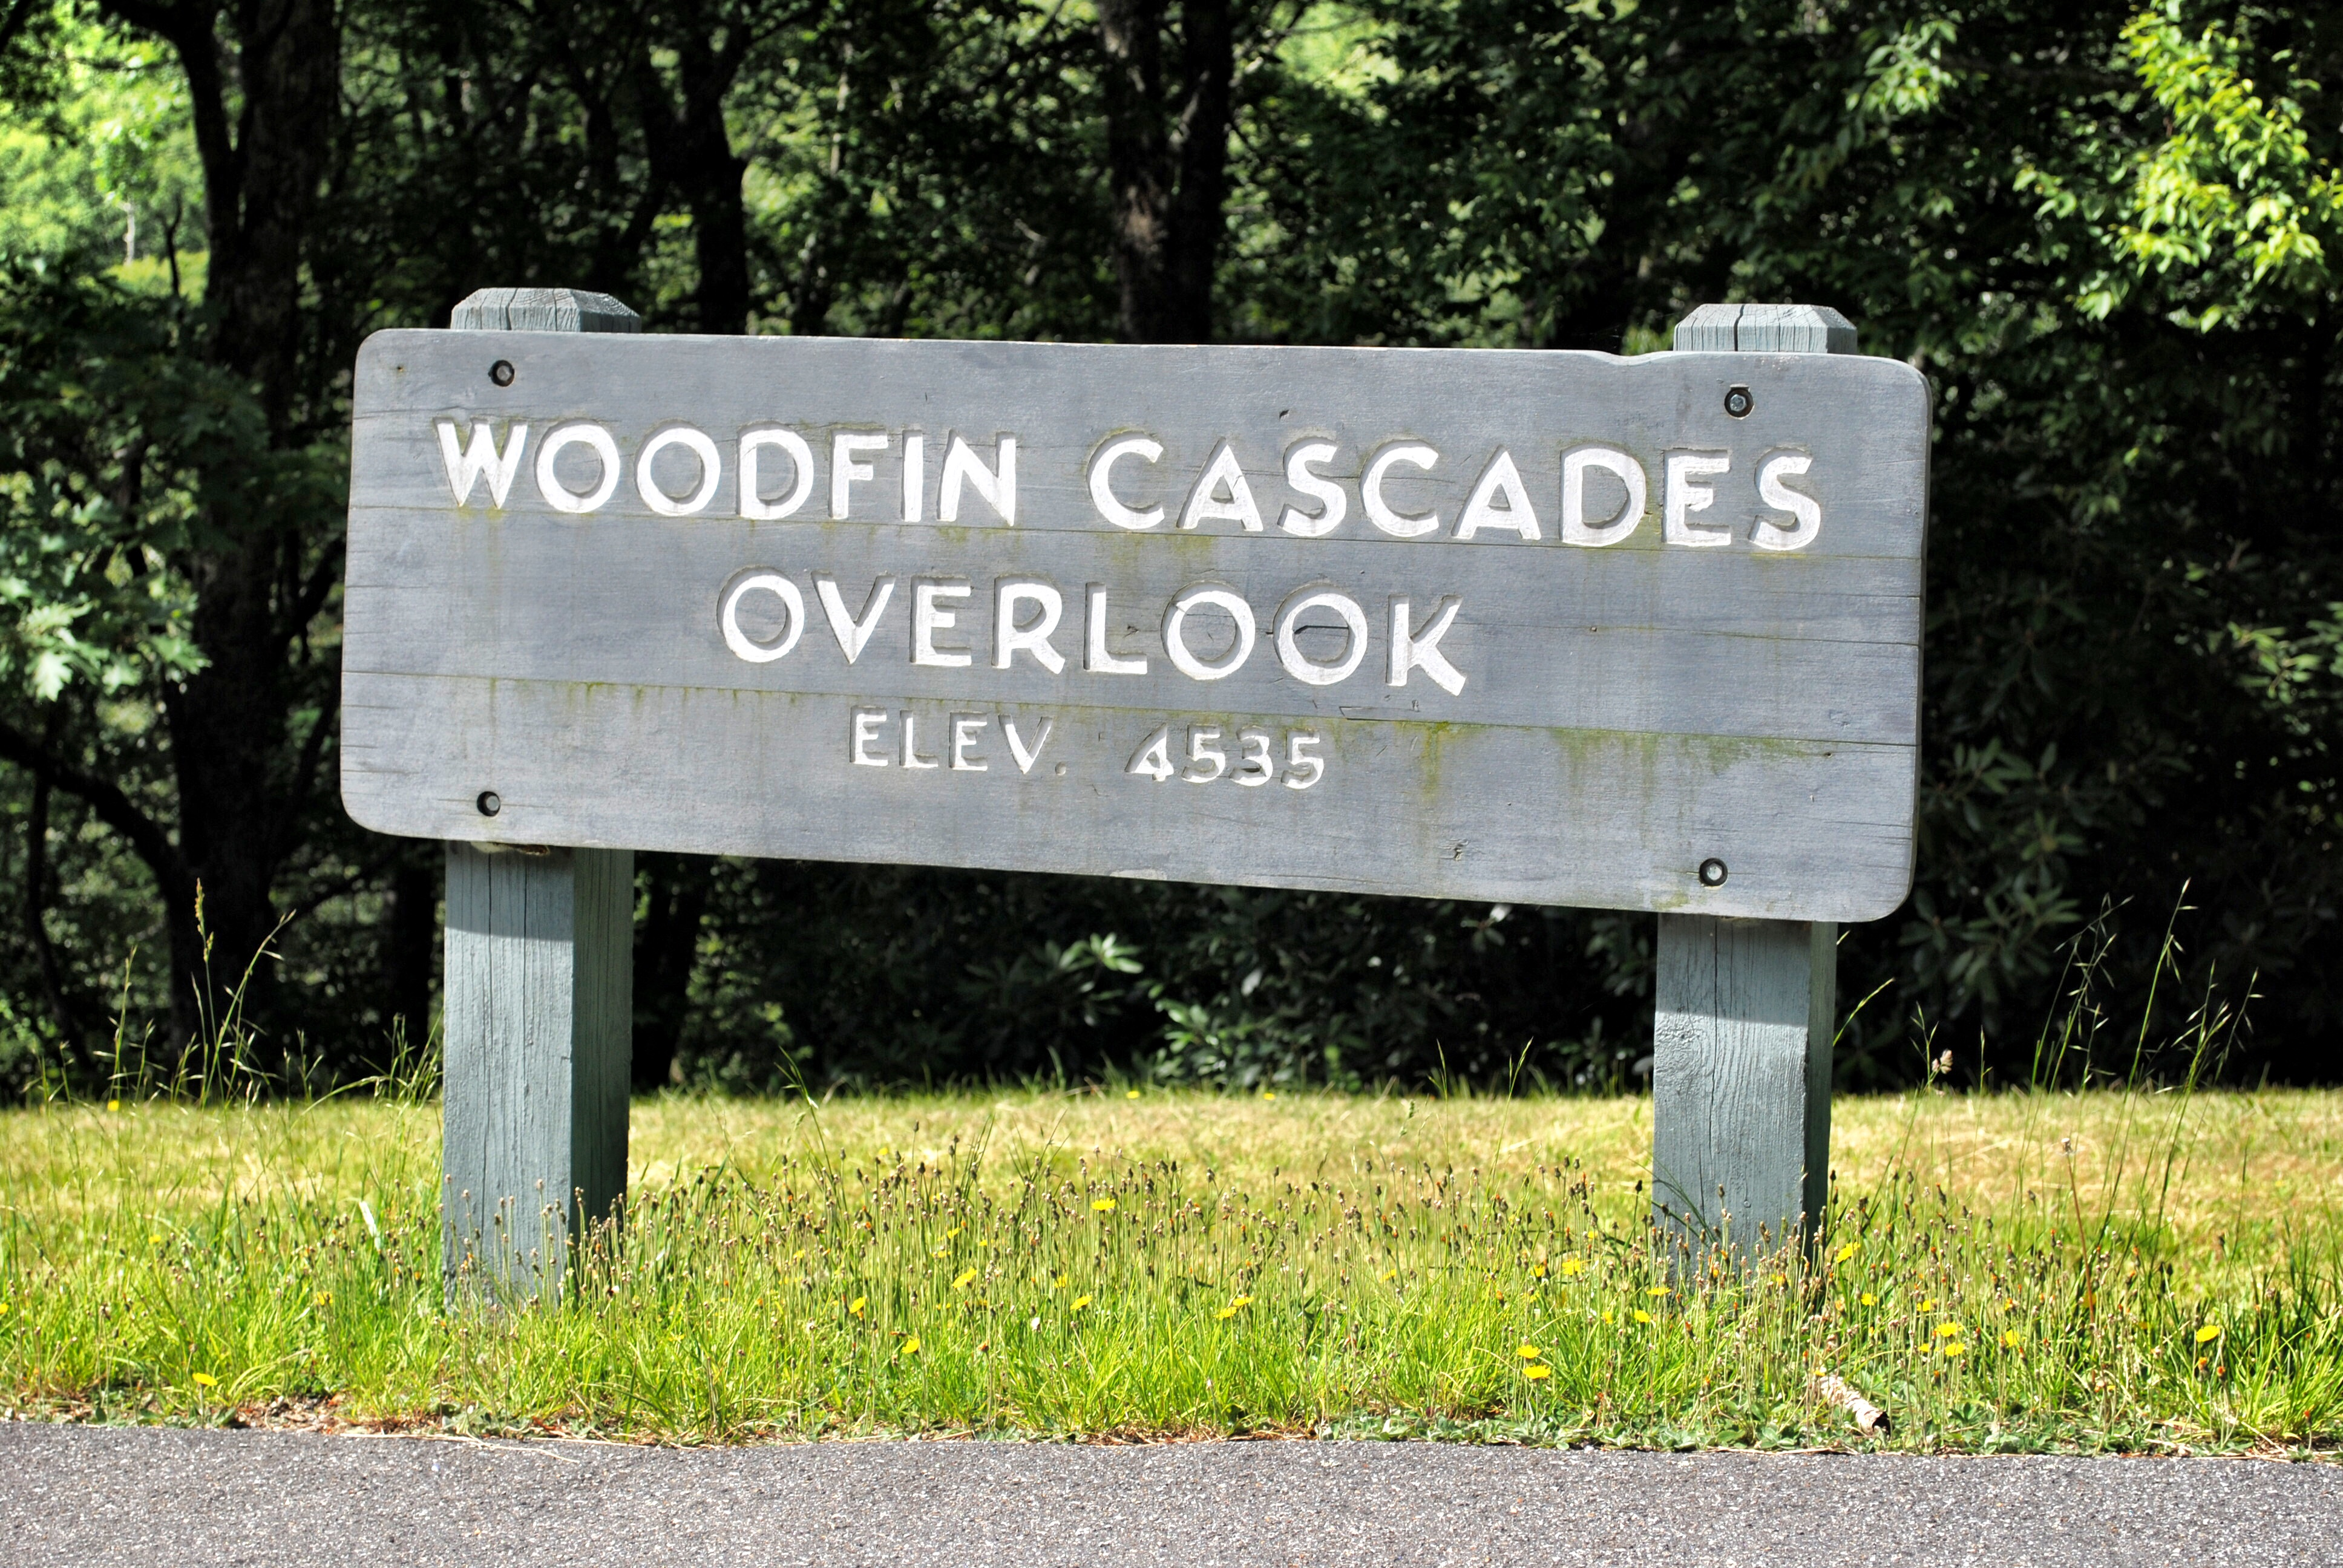 Woodfin Cascades Overlook in North Carolina